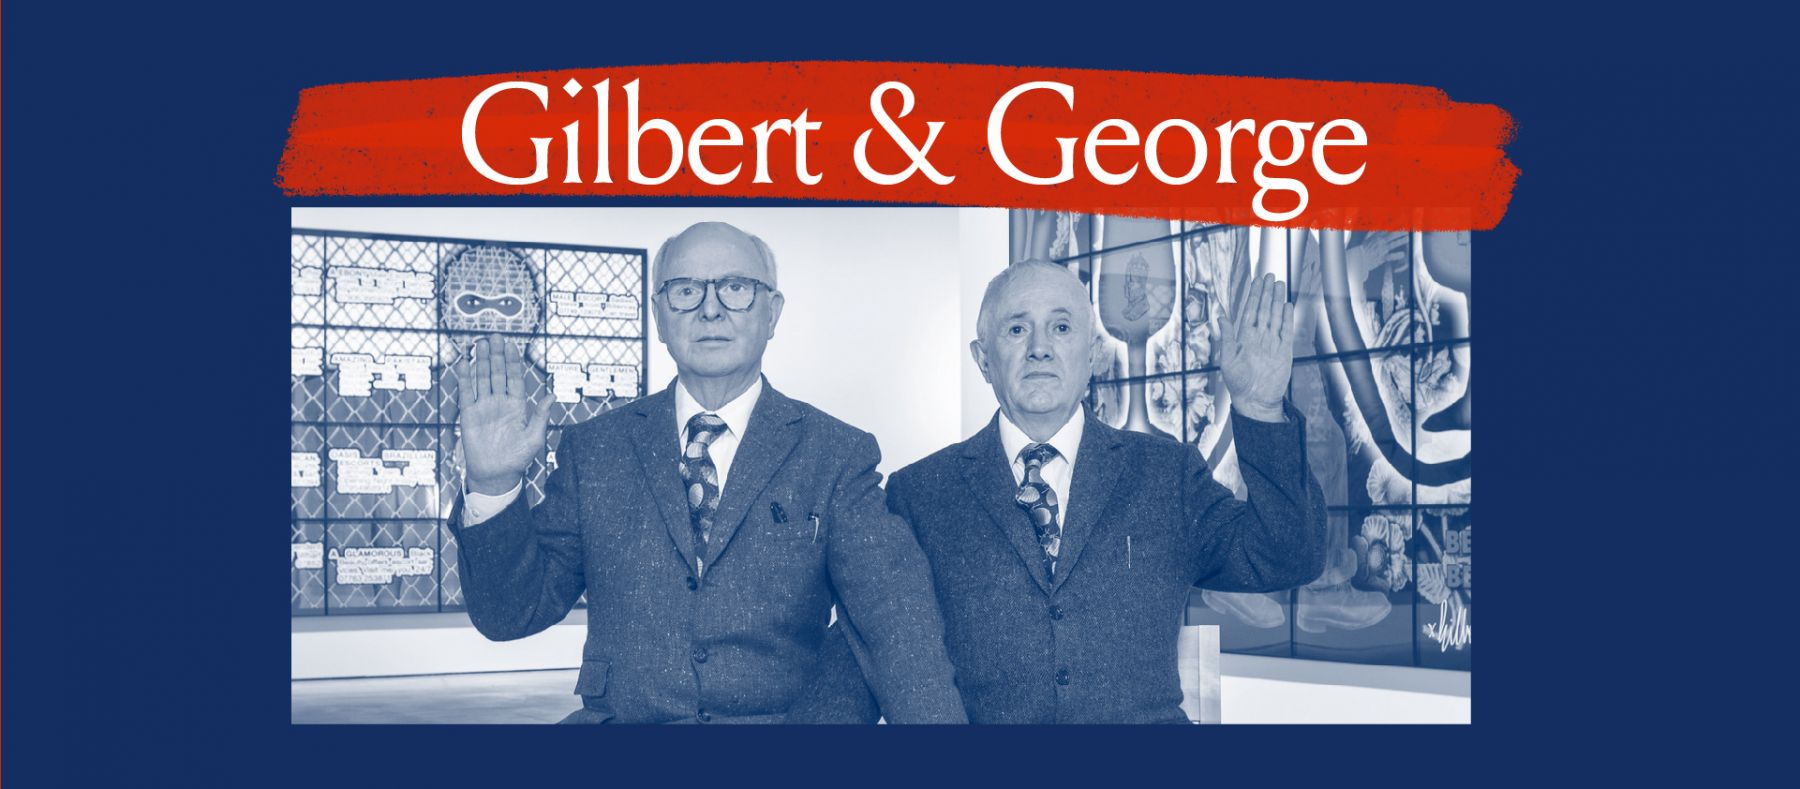 Gilbert & George Portrait Banner